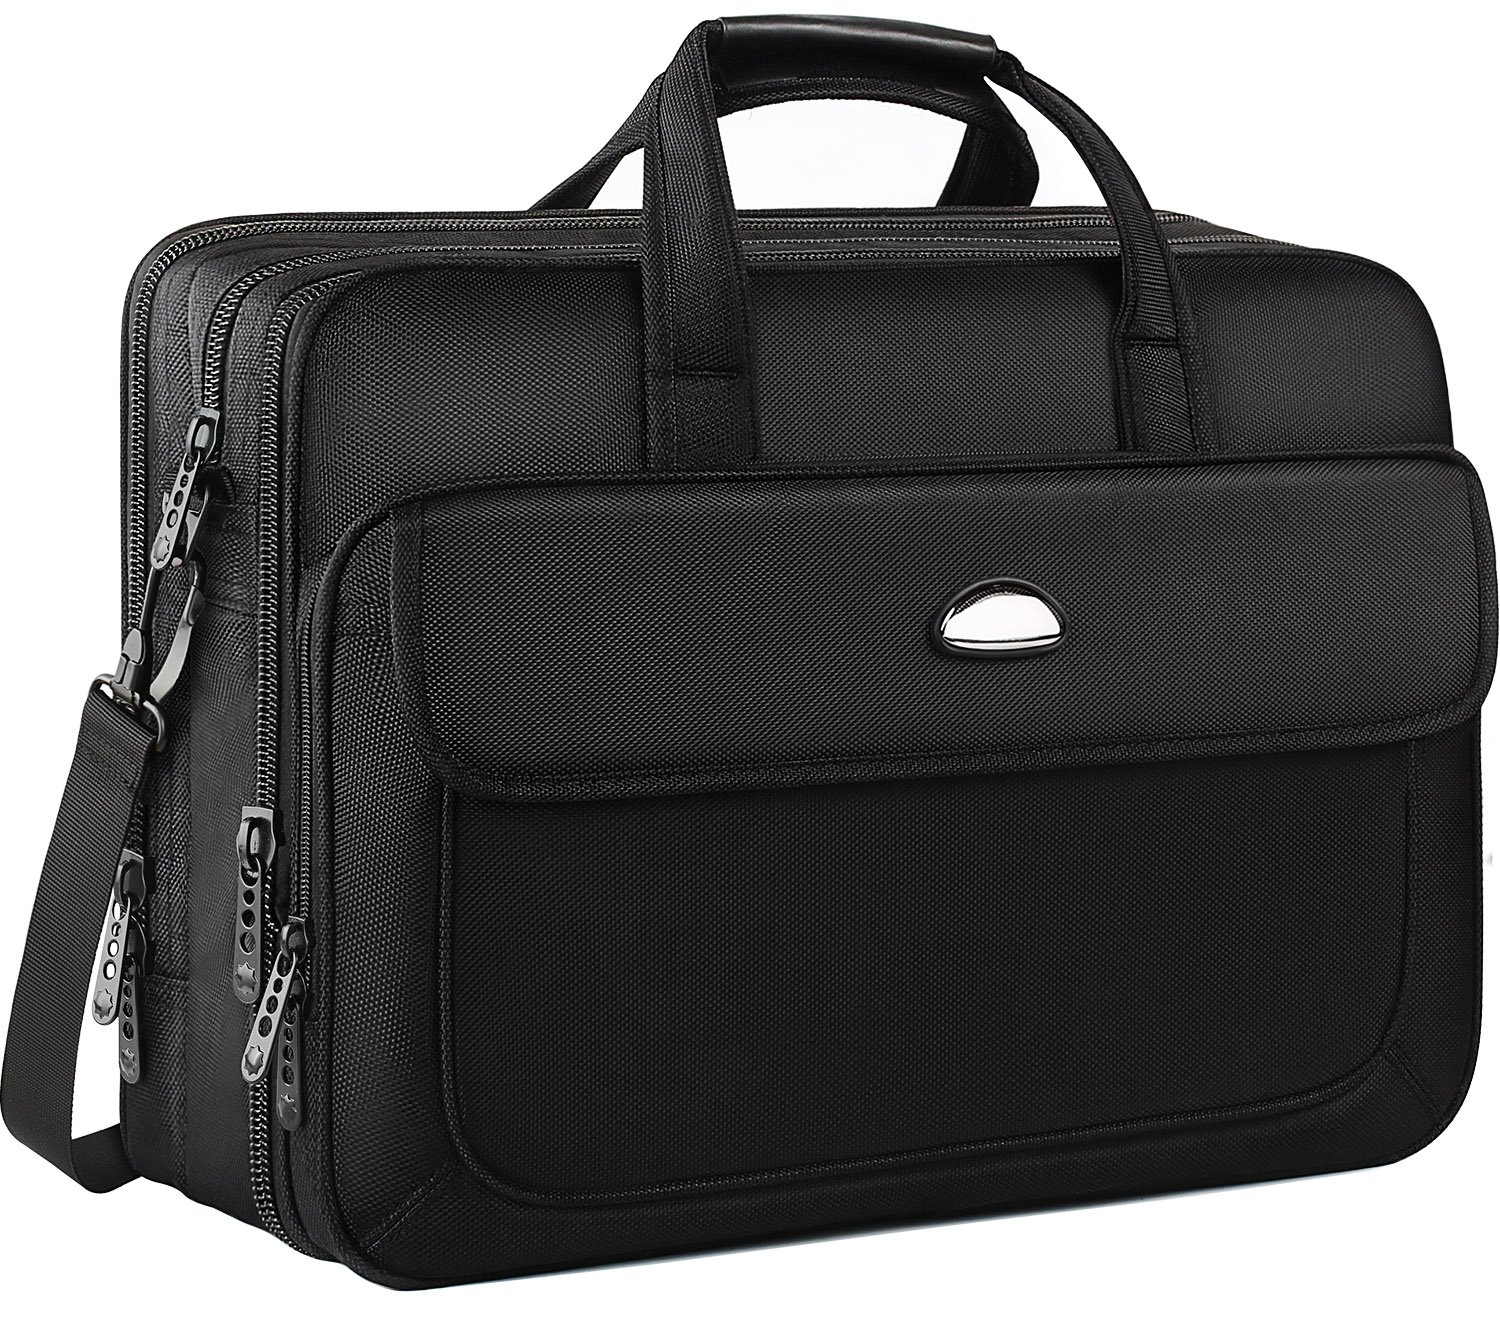 17 inch Laptop Bag, Business Travel Bag for Men Women, Expandable Large Hybrid Shoulder Bag, Water Resisatant Carrying Case Fits 15.6 Inch Laptop, Computer, Tablet Notebook, Ultrabook-Black